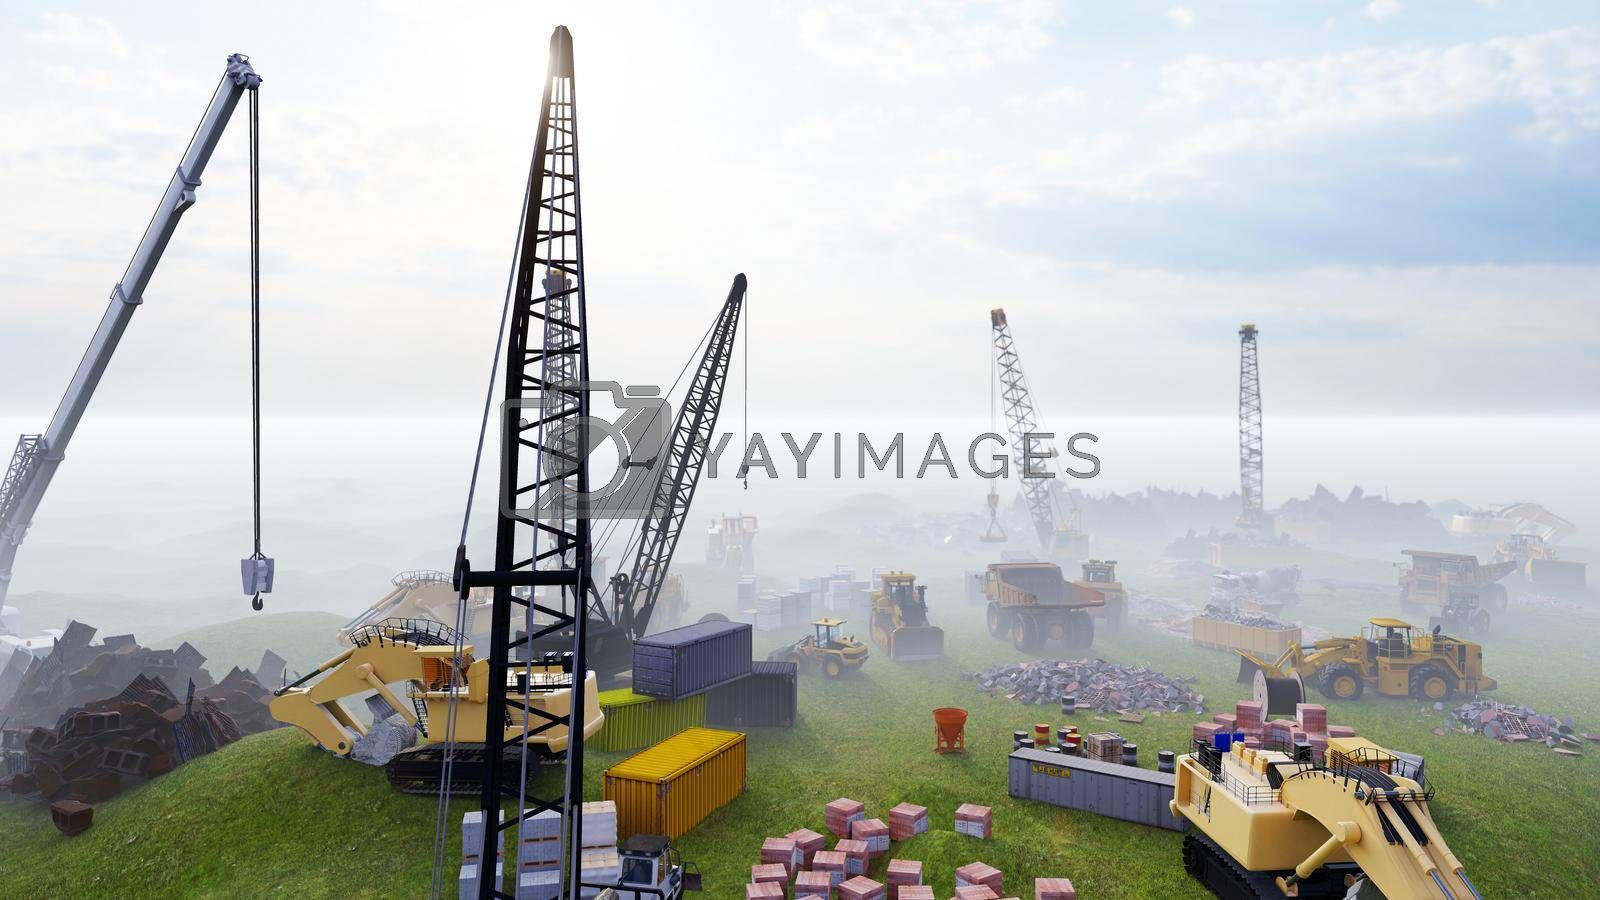 Construction site with tractors and cranes, industrial landscape in a summer day. The concept of construction.